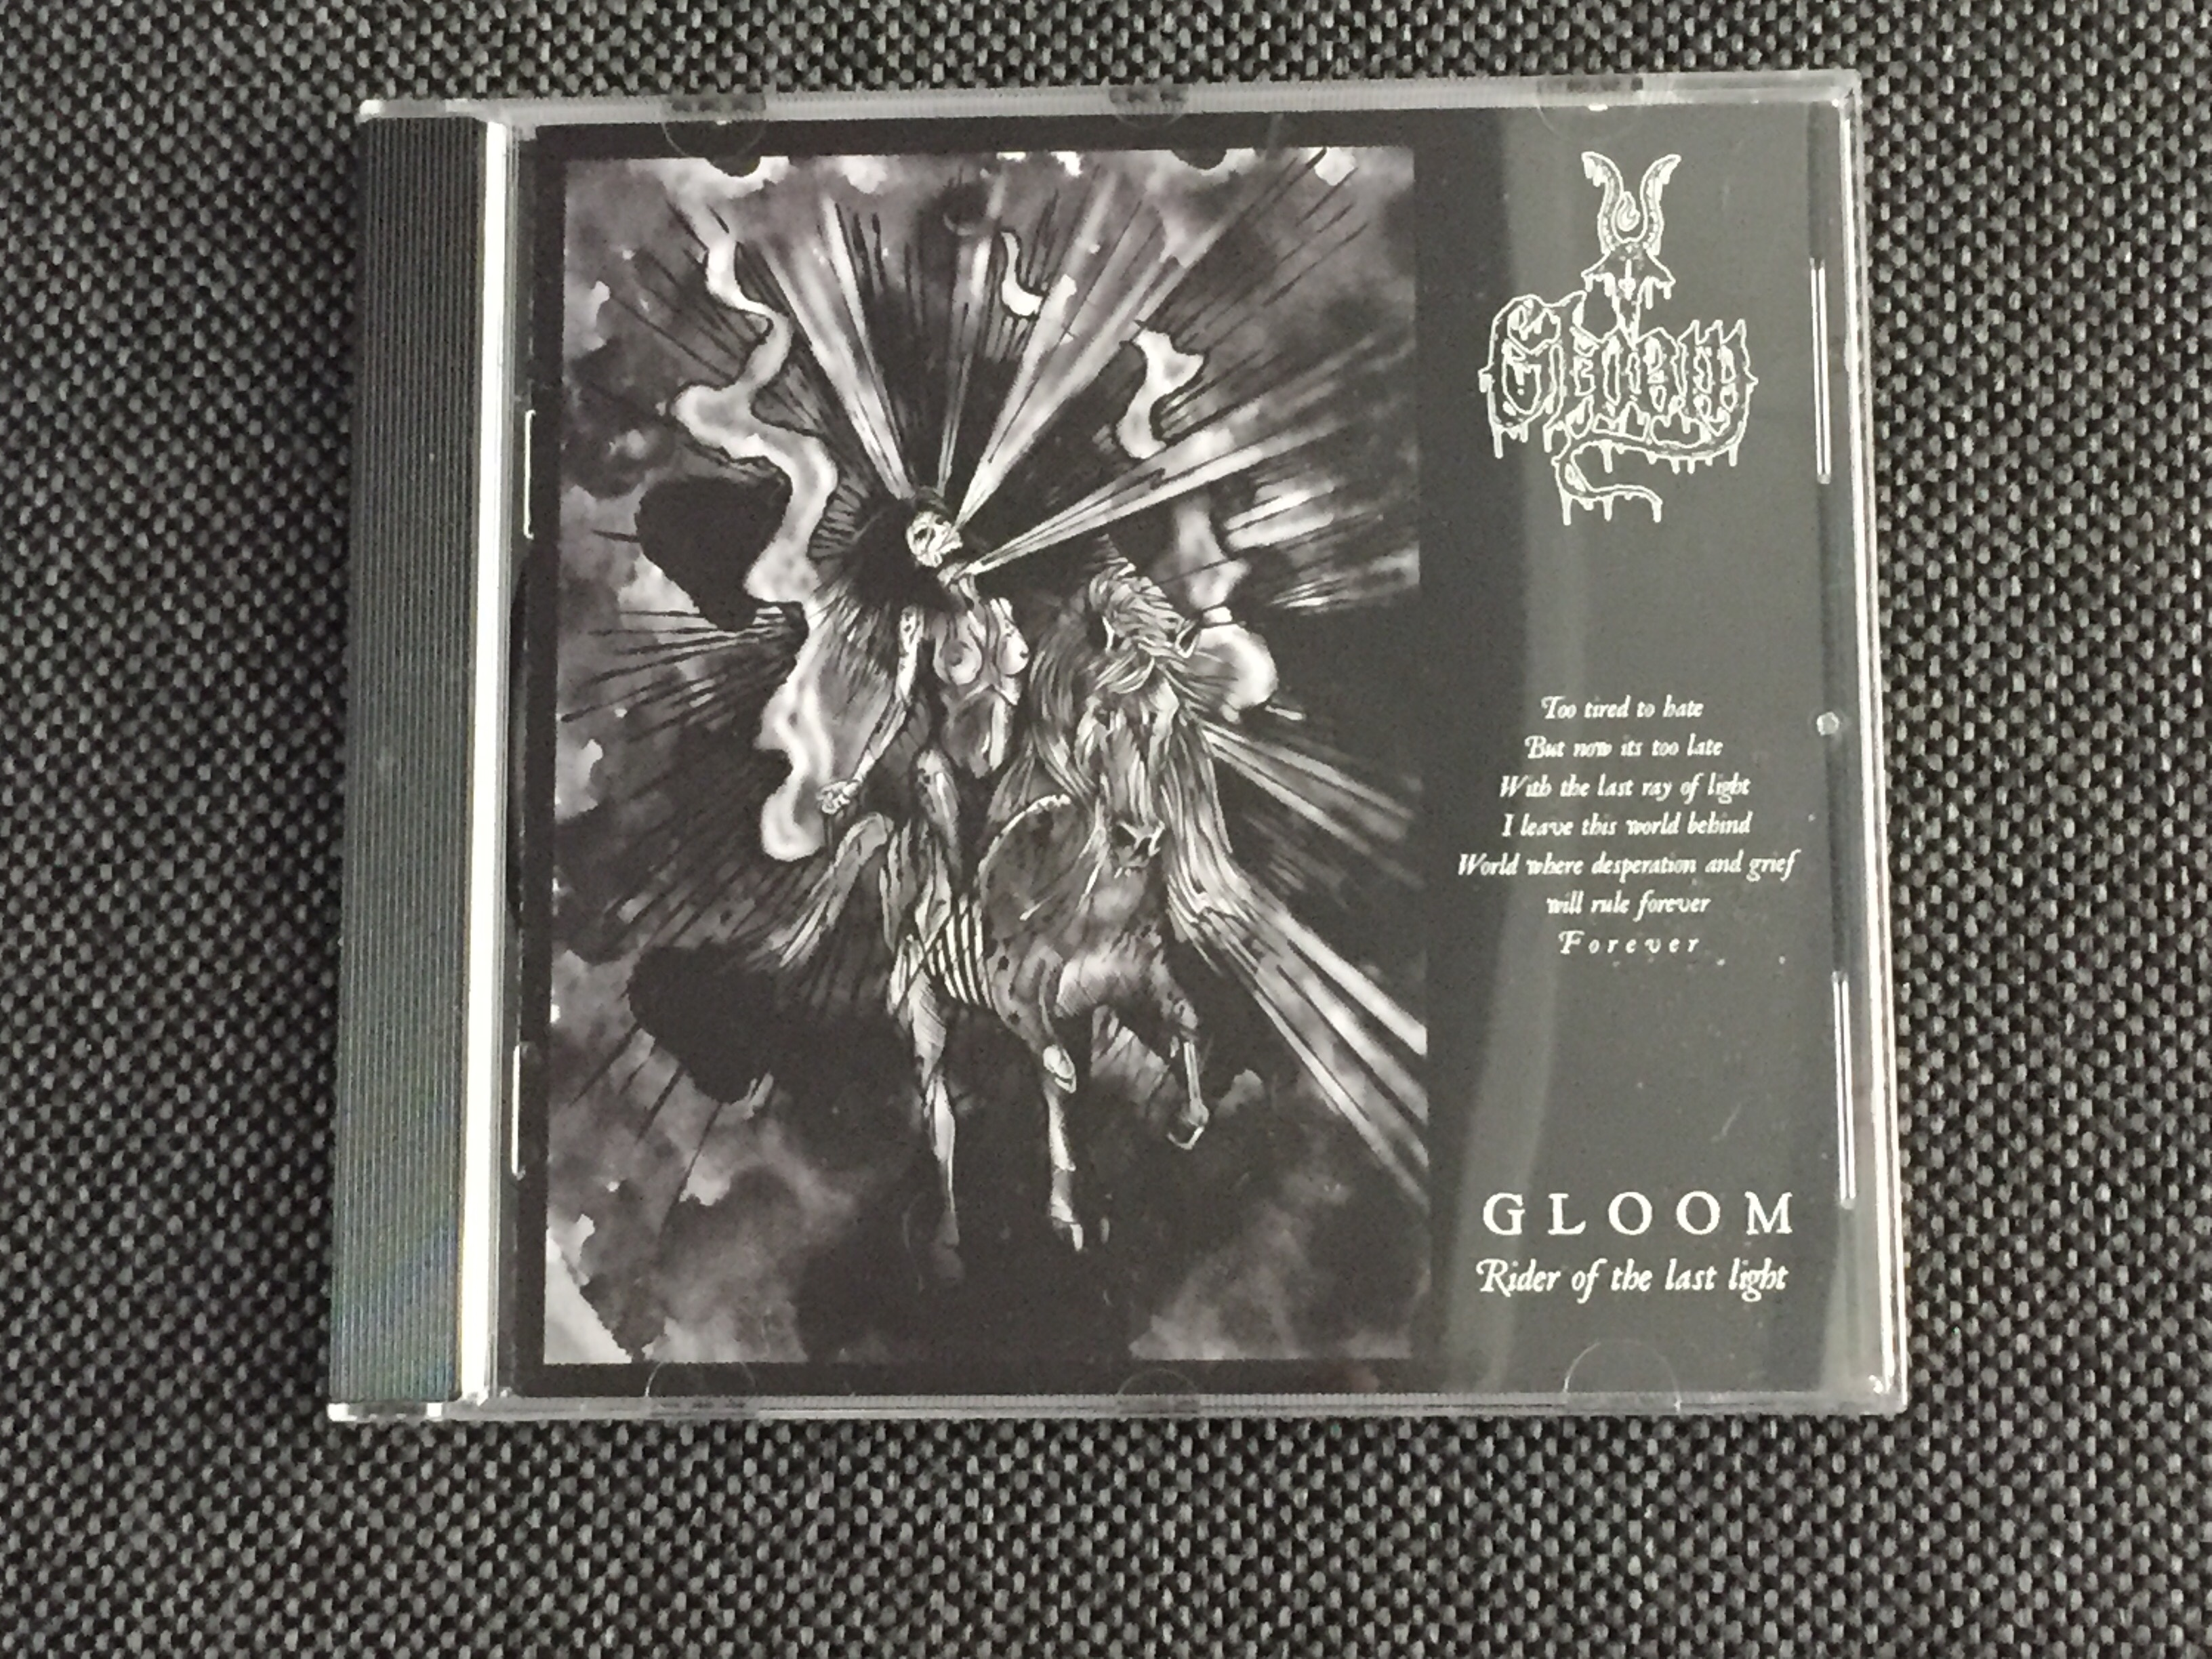 GLOOM: Rider of the Last Light, CD